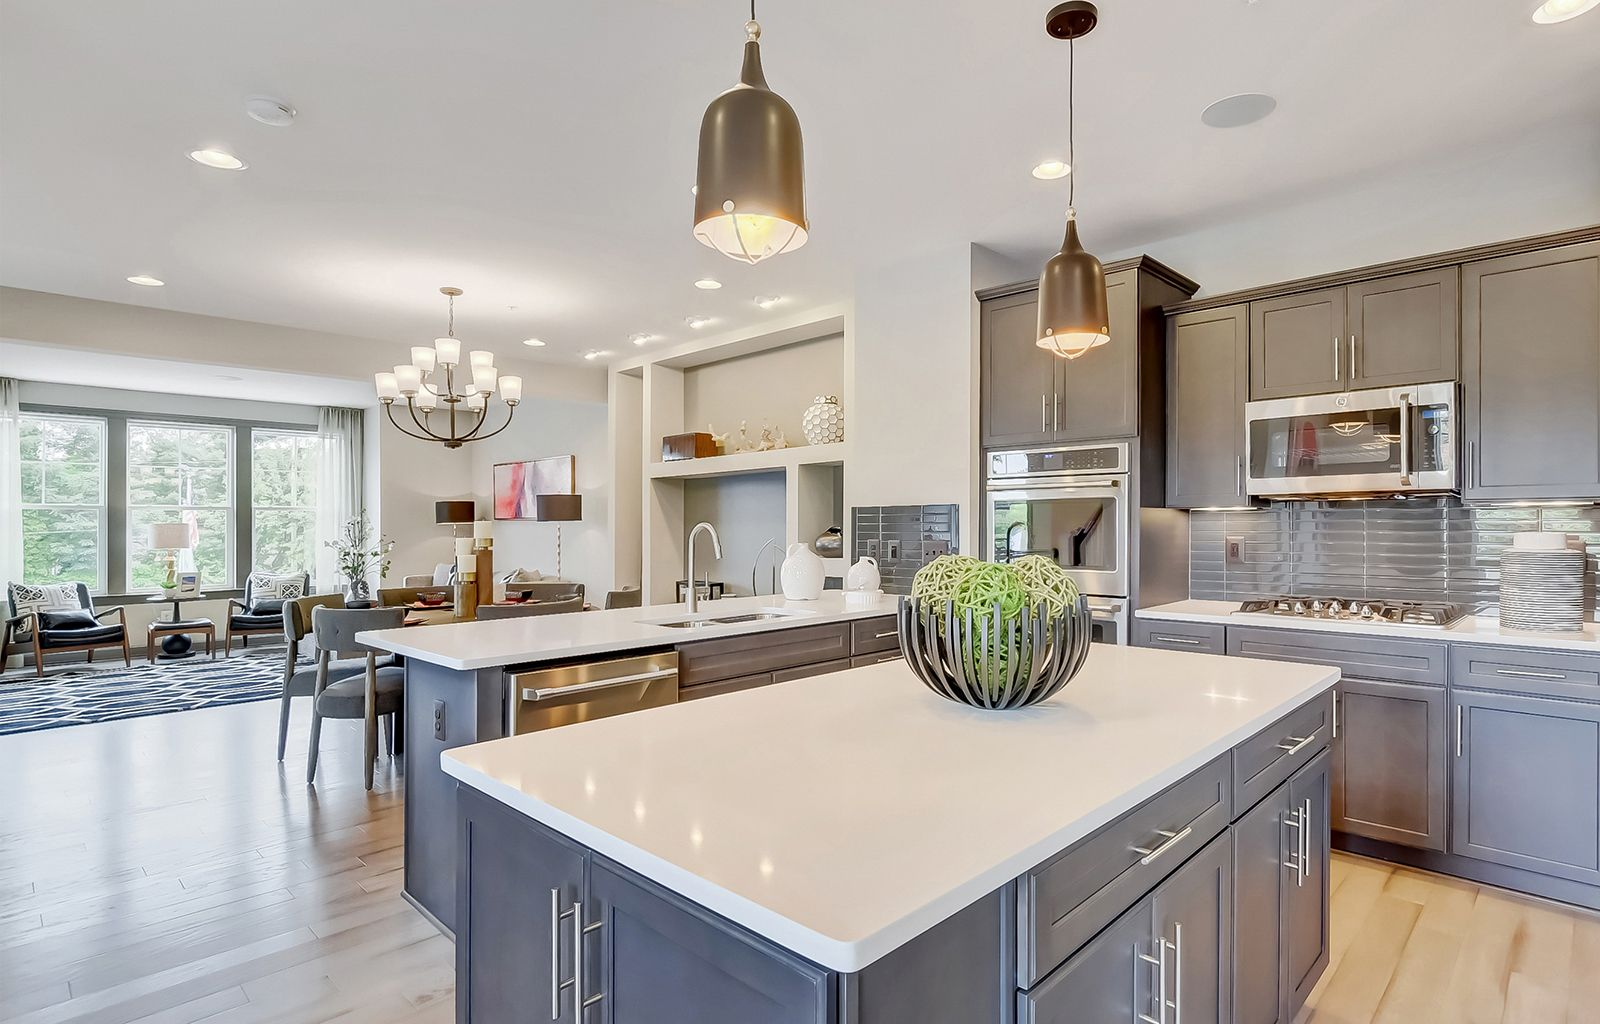 Pin By Marie Wallace On Dream House In 2020 Contemporary Kitchen Home Simple Interior Design